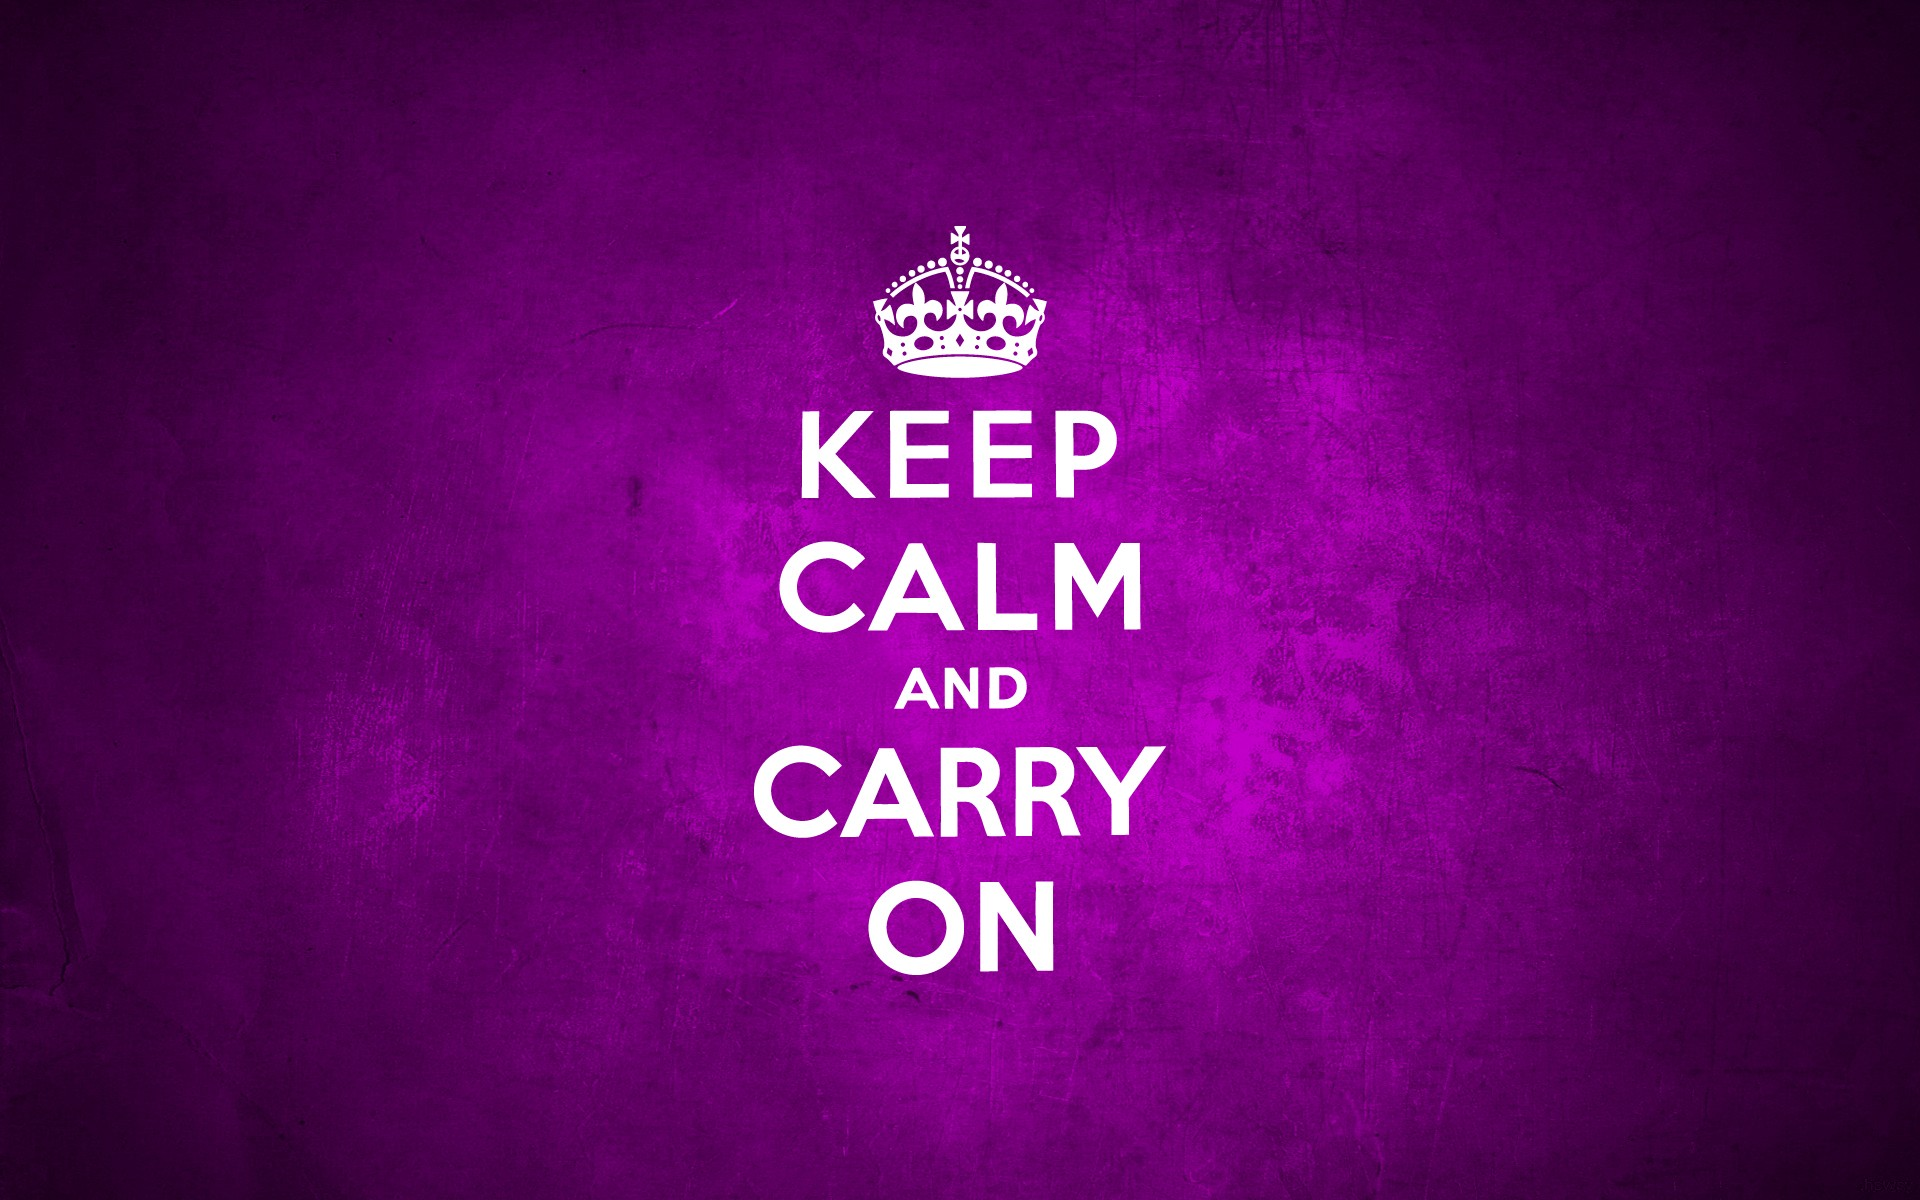 9 Hd Keep Calm And Carry On Wallpapers